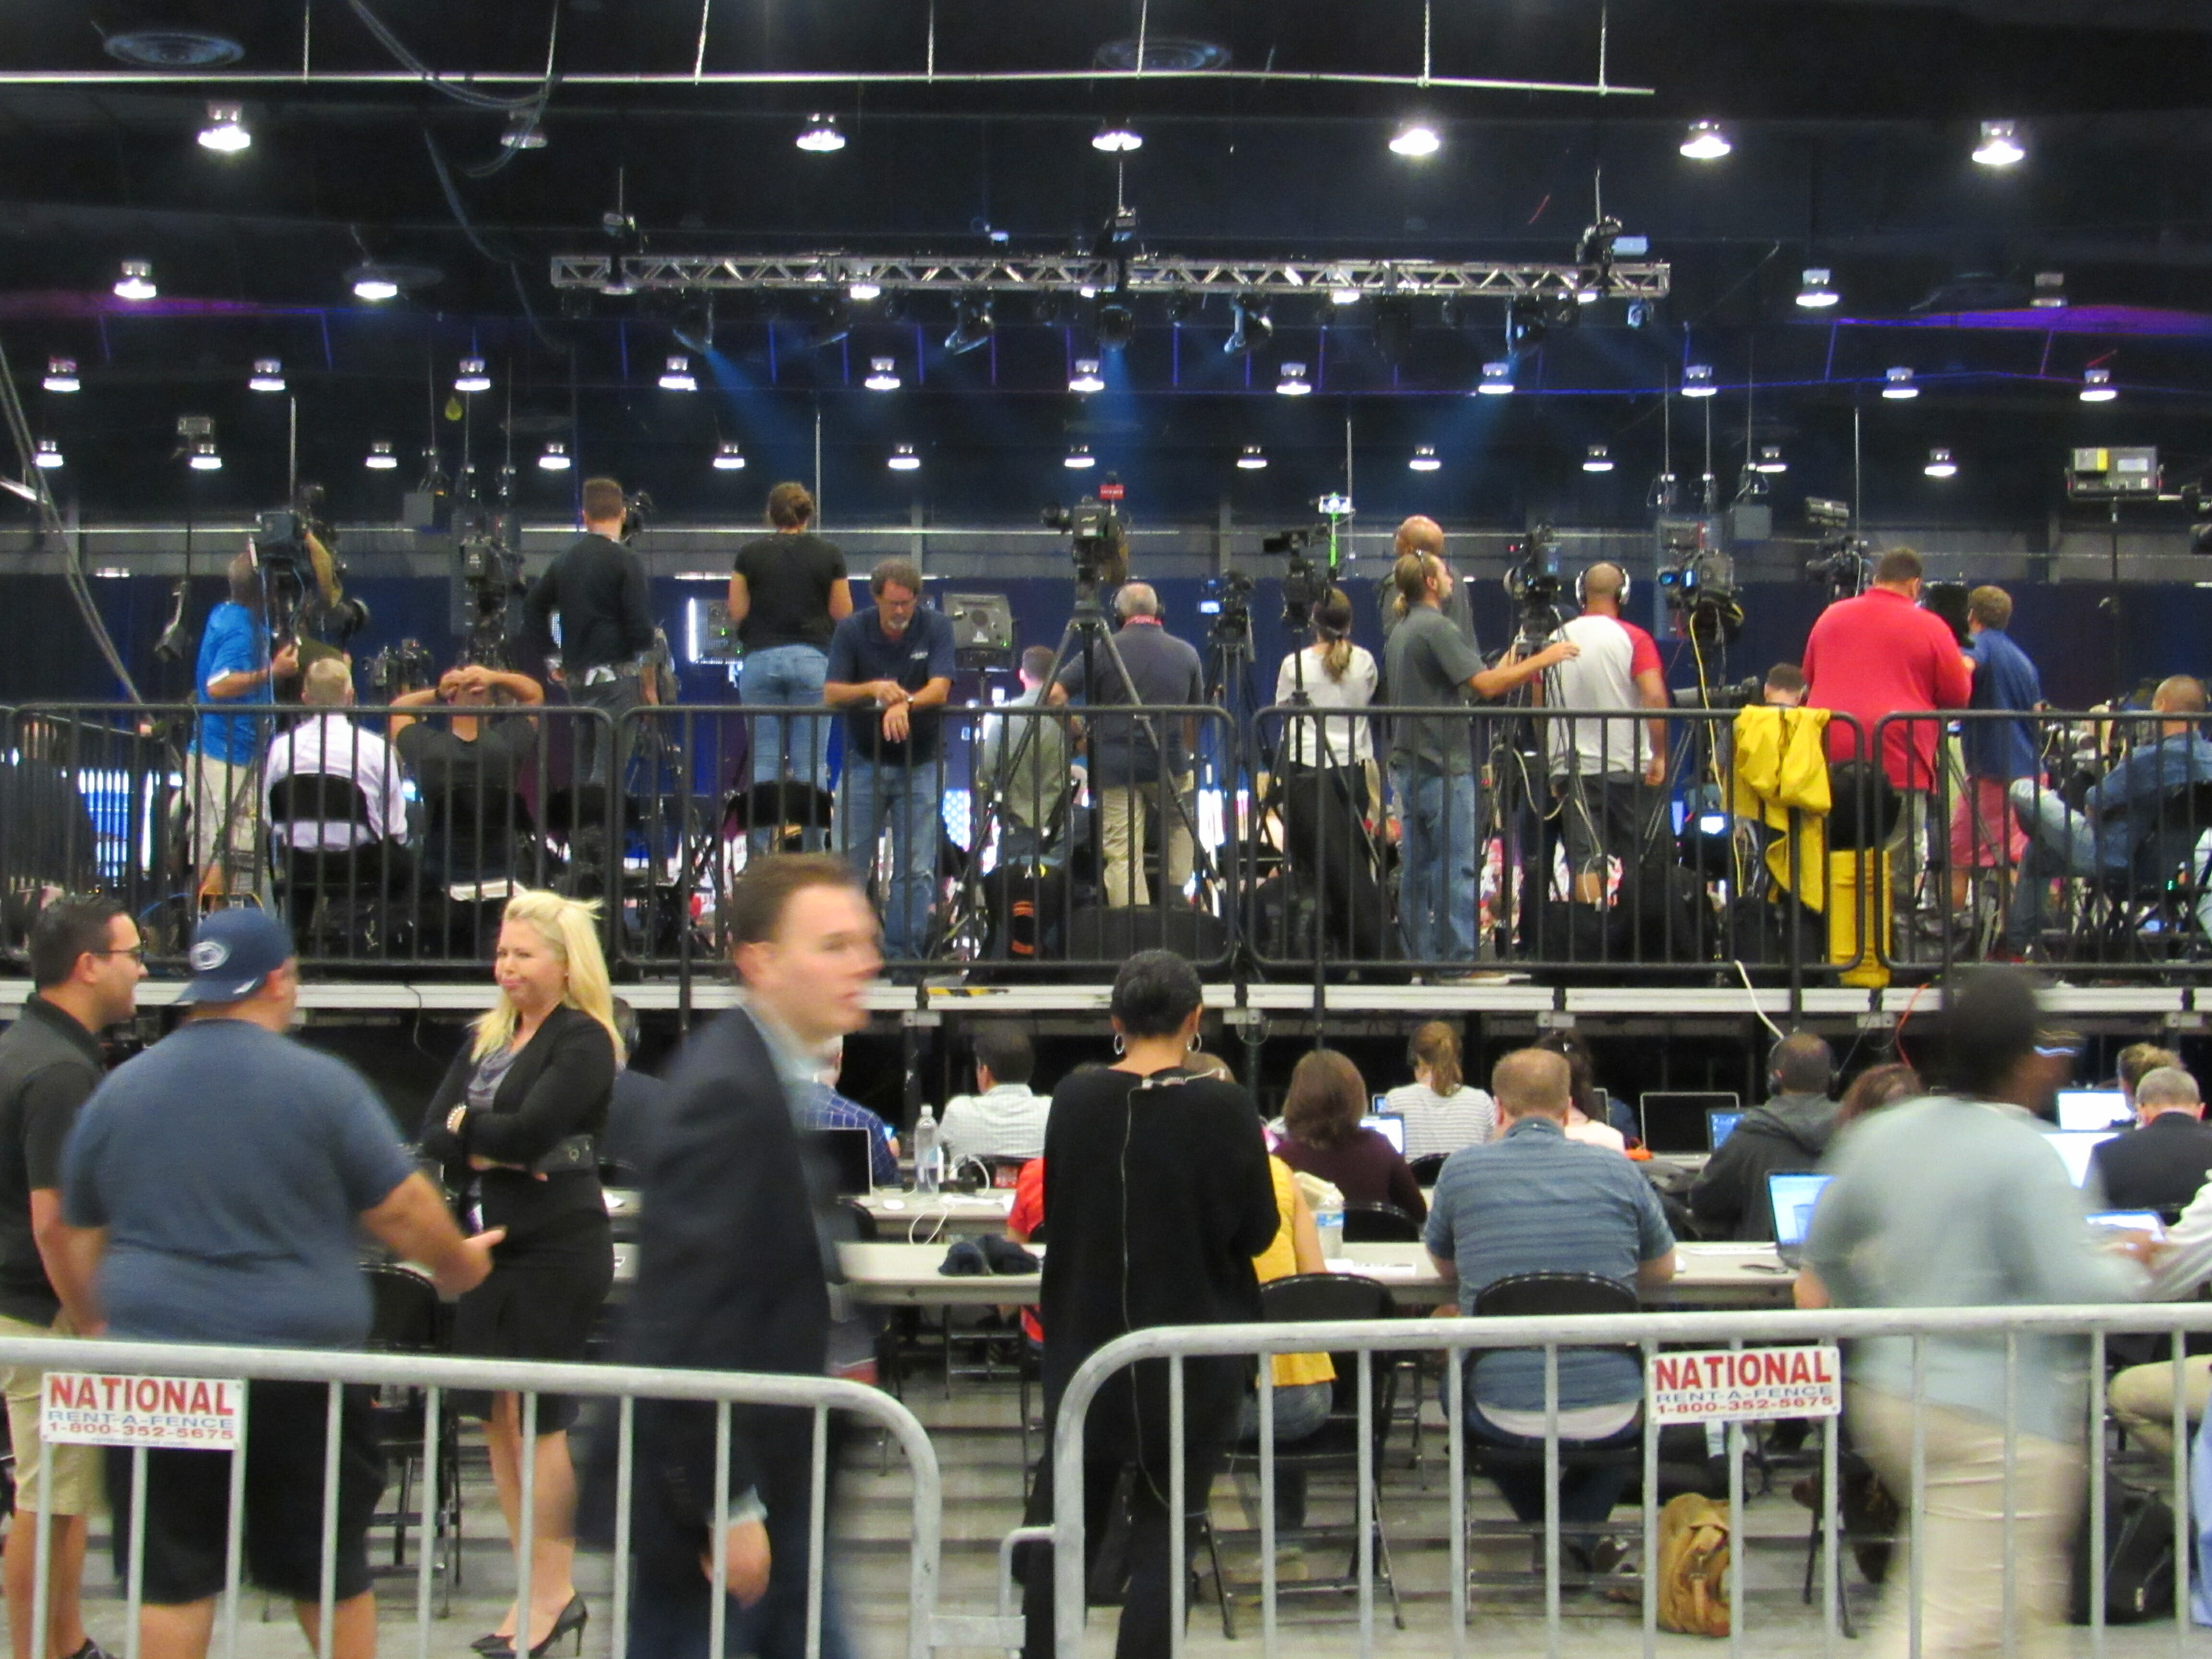 Back view of media pen Trump West Palm Beach rally